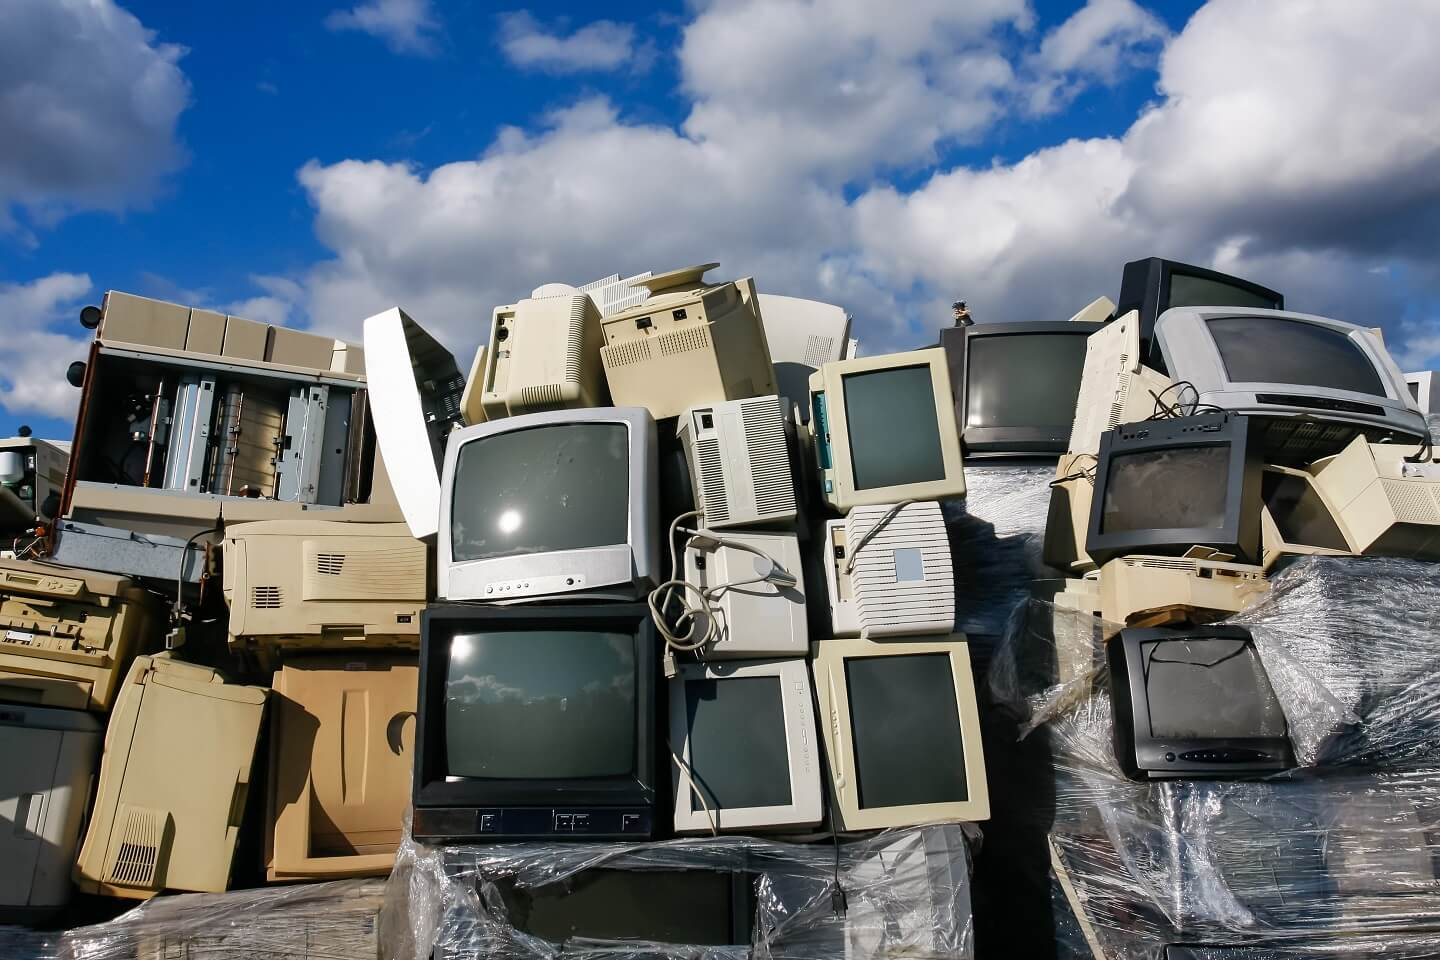 electronic waste in landfill